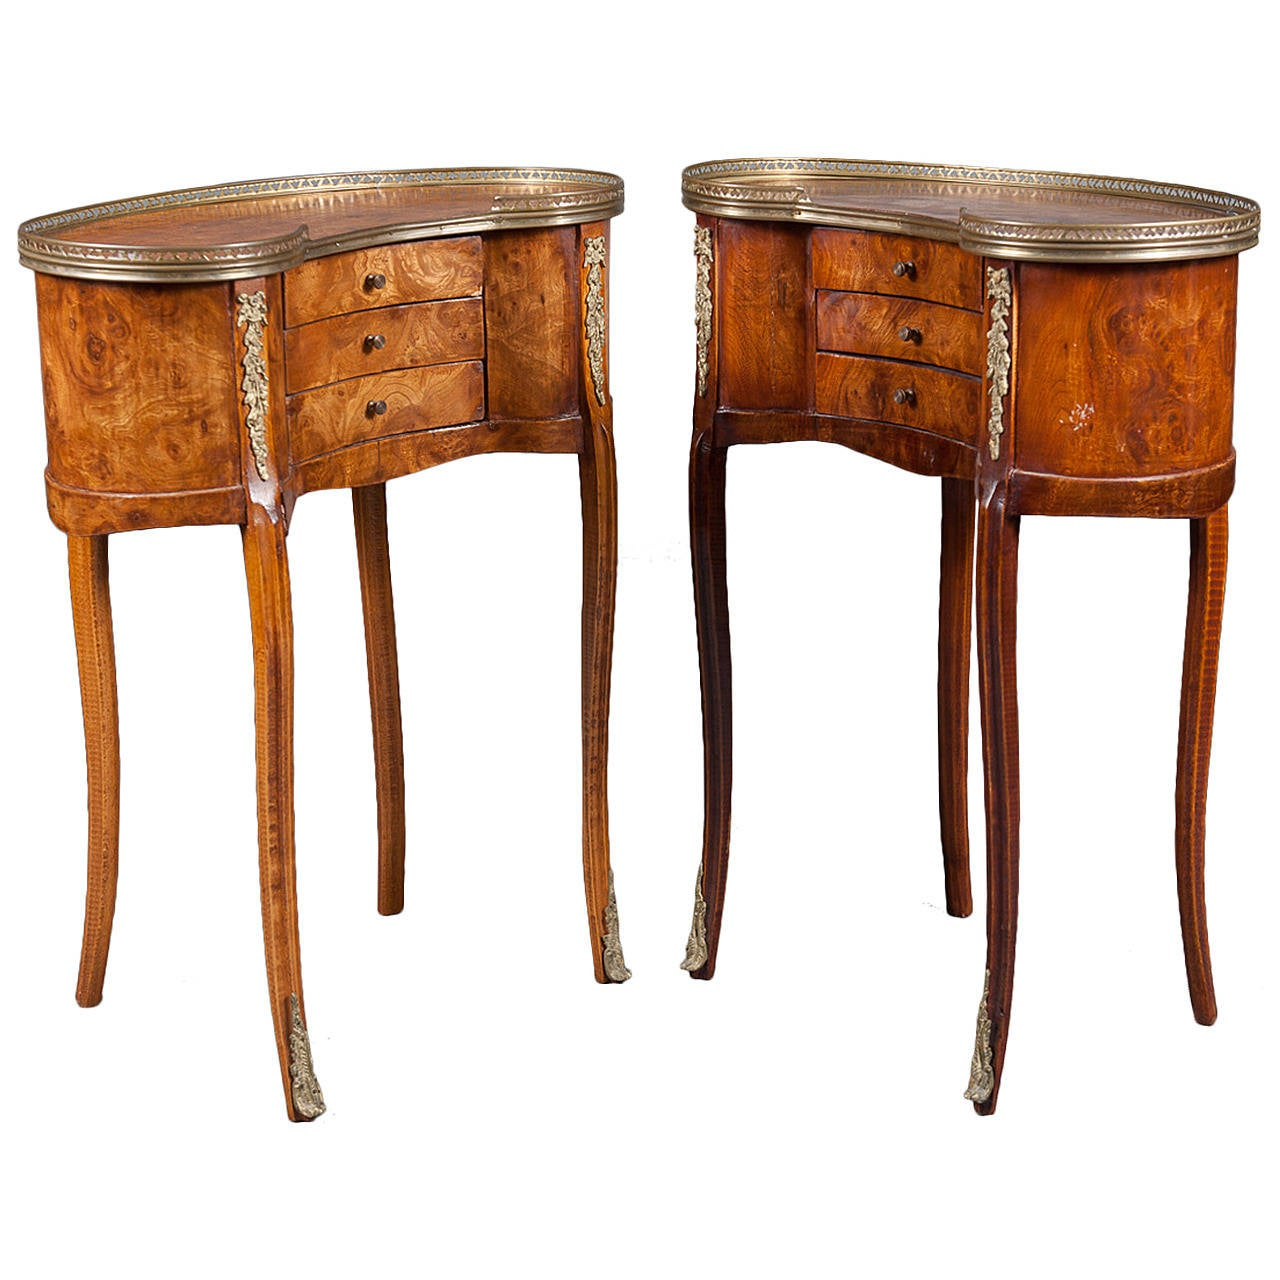 A Pair Of French Br Mounted Kidney Shaped Side Tables With Drawers For